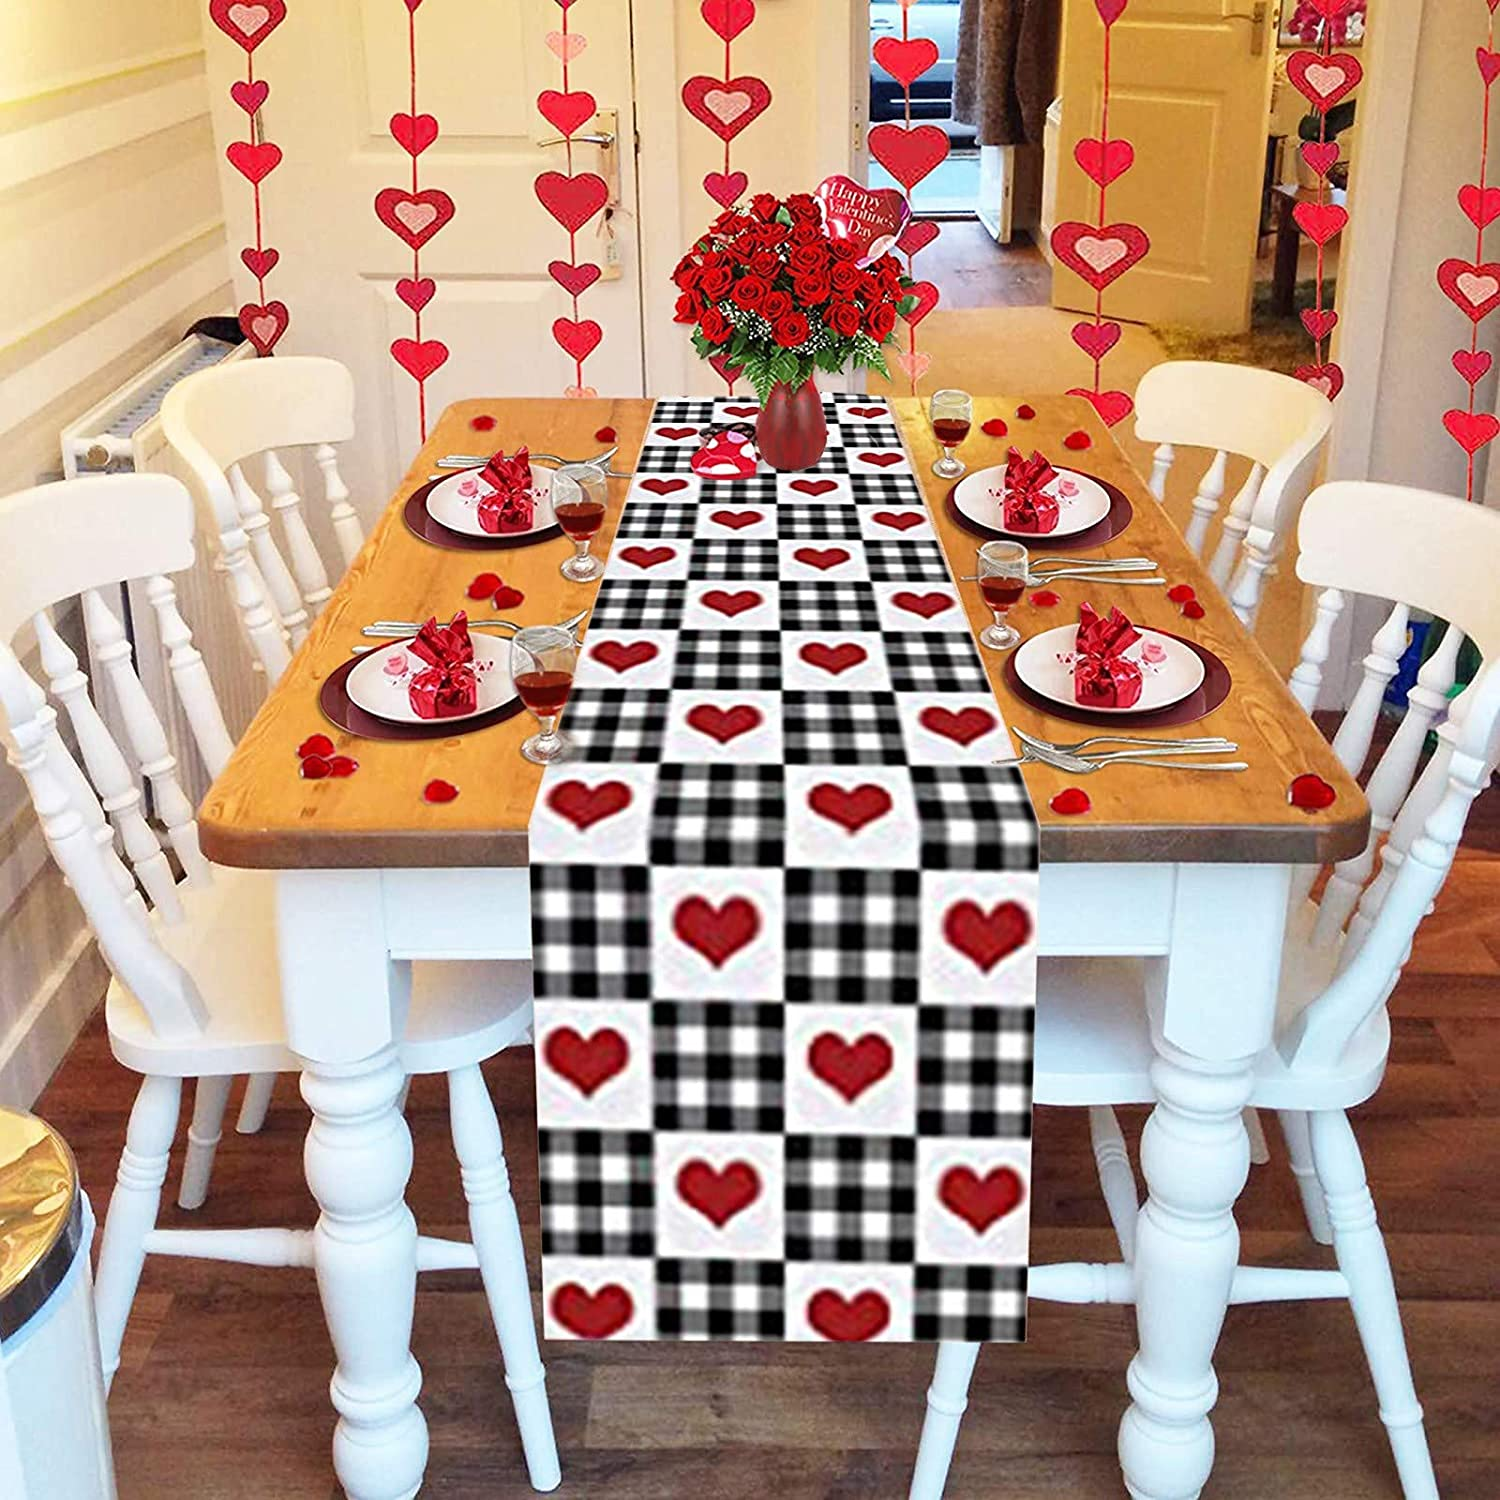 Heart Table Runners